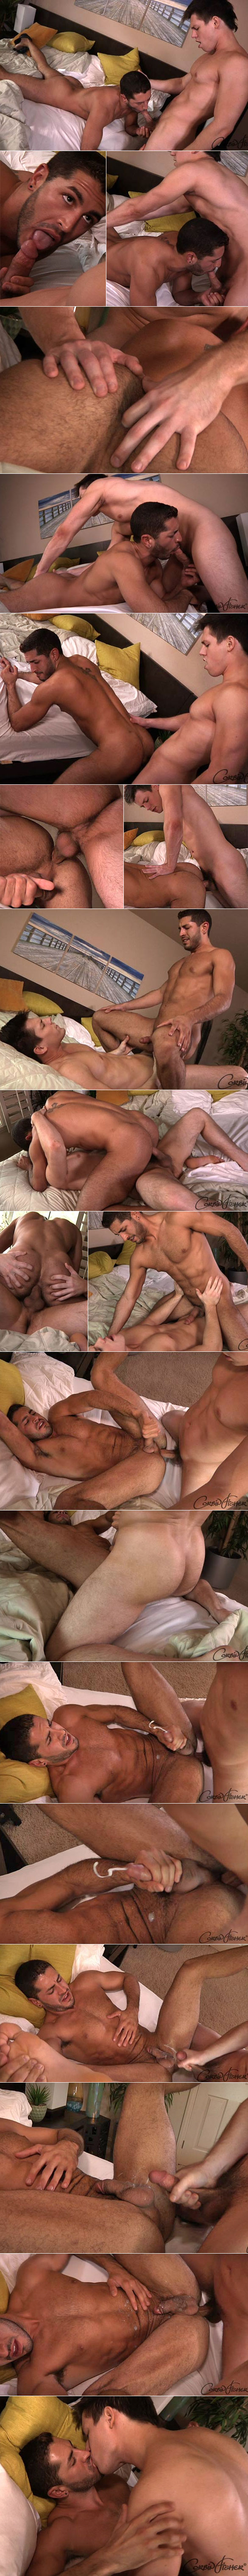 Corbin Fisher: Kellan barebacks Zack